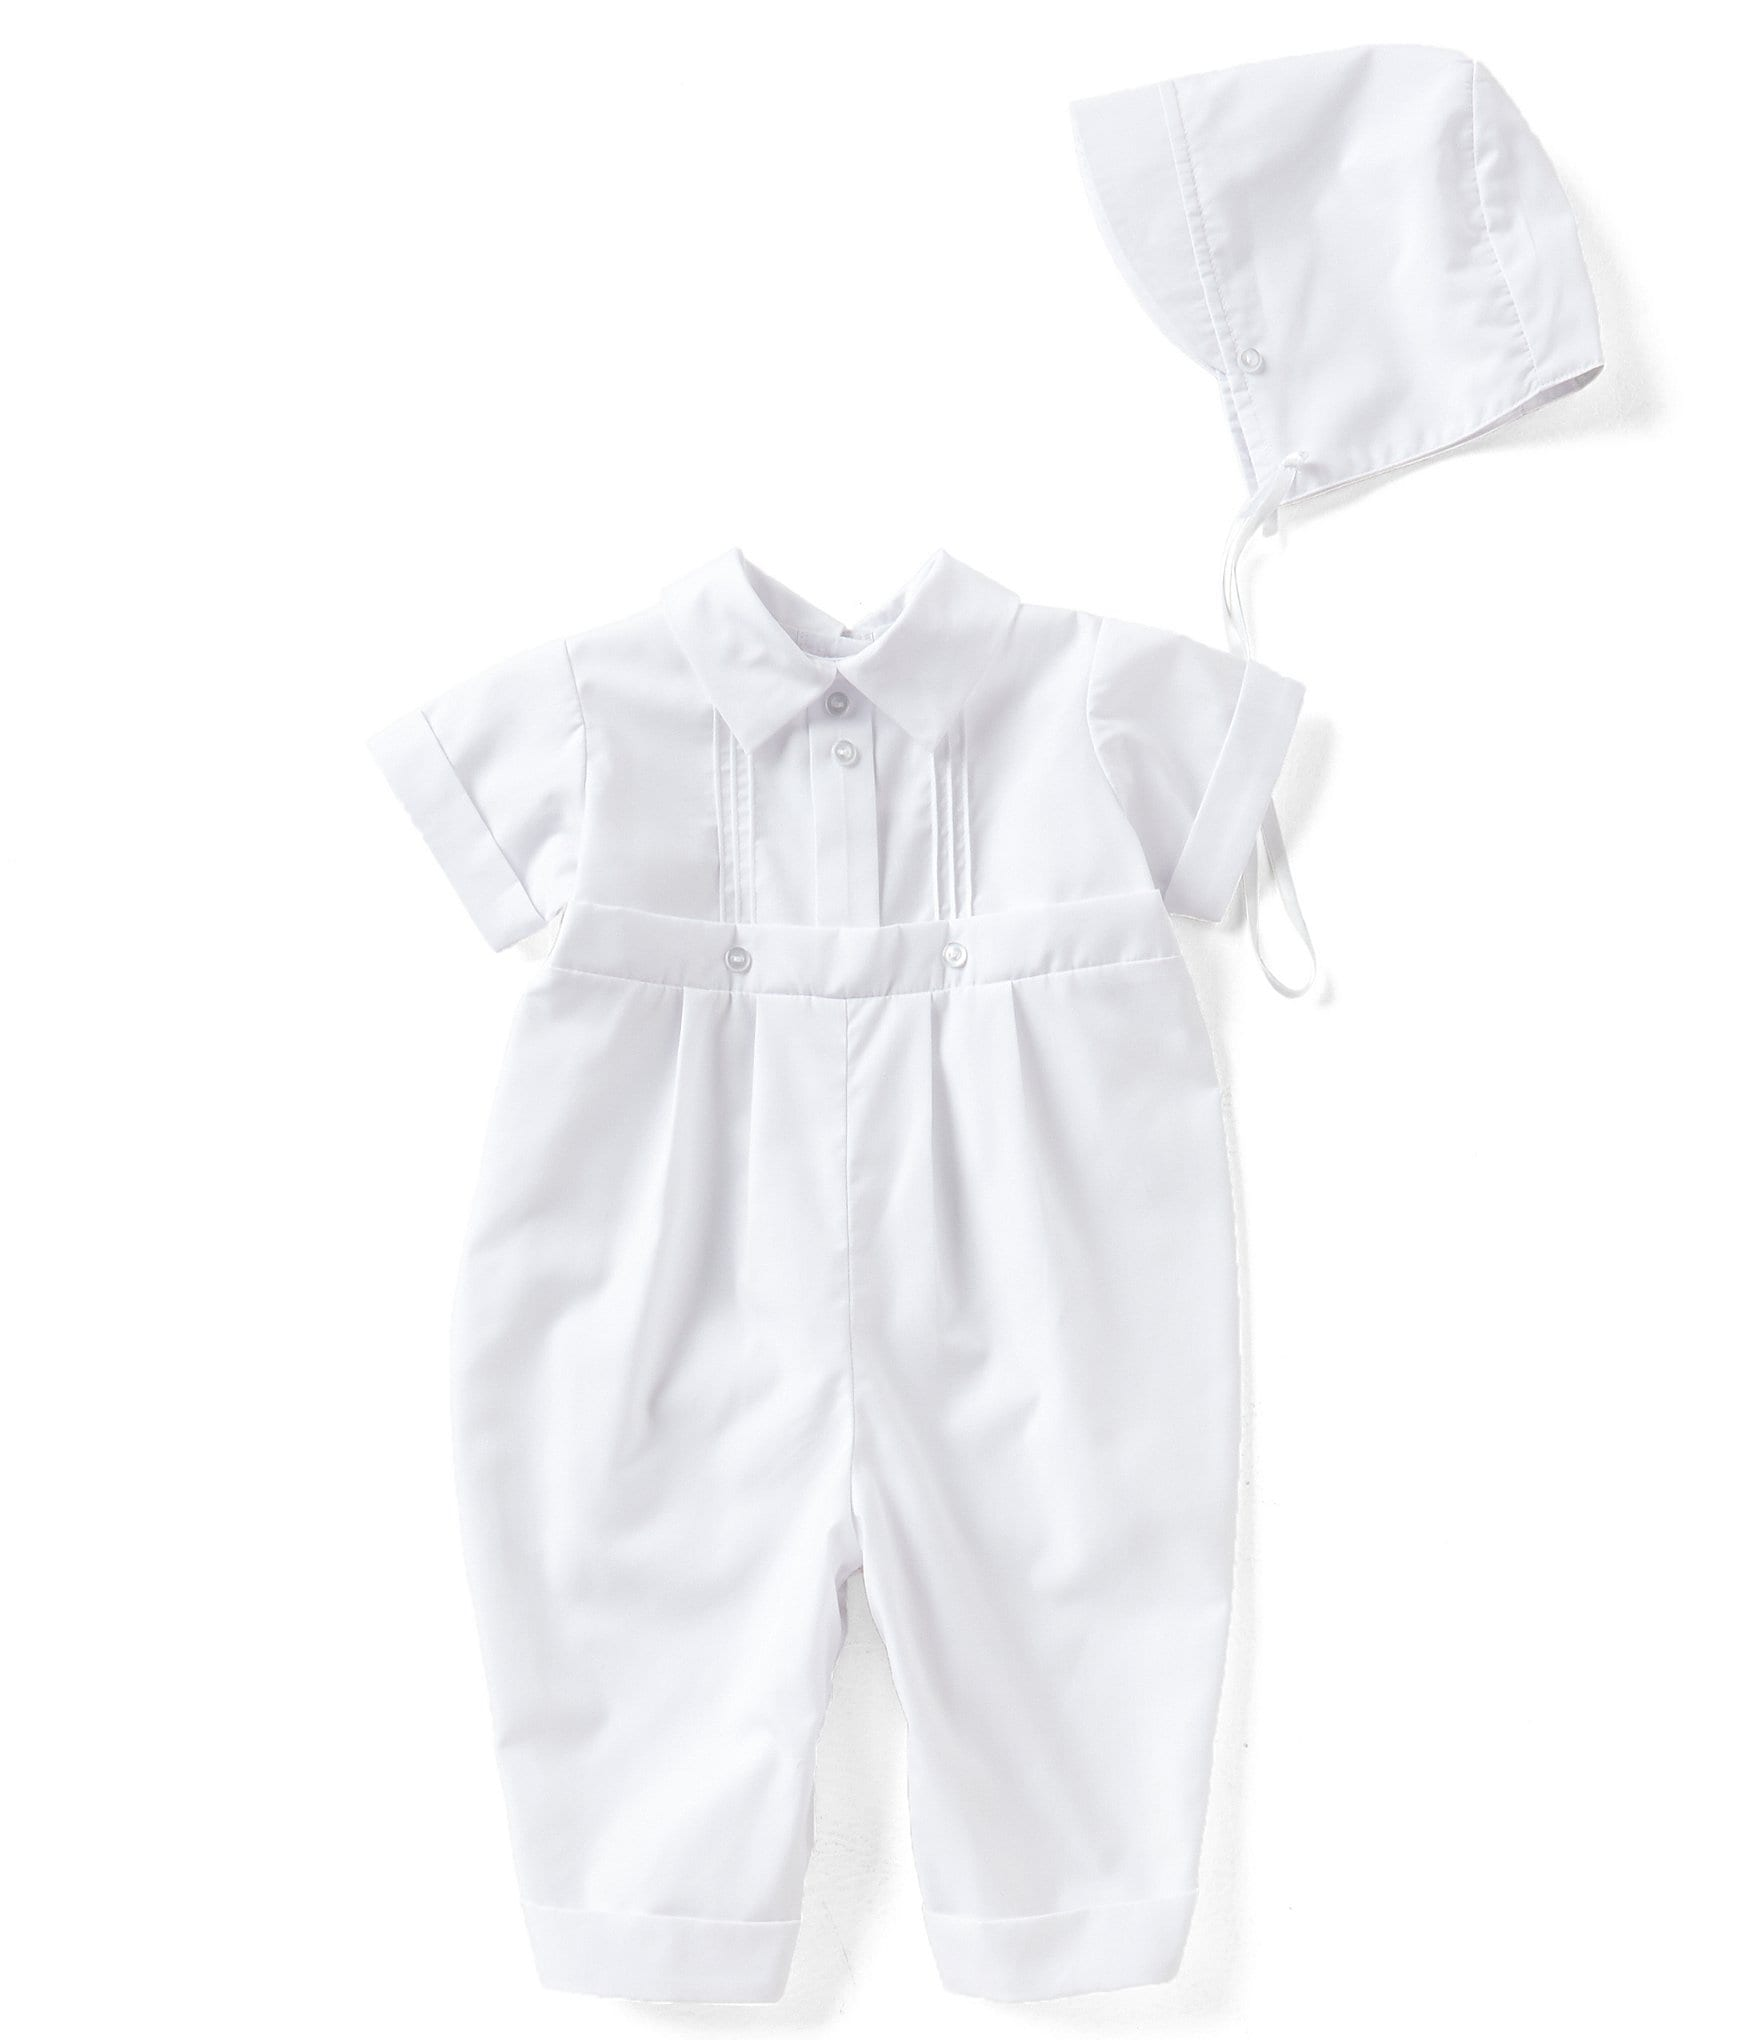 f01b97e9c Baby Boy Christening Outfits   Accesories